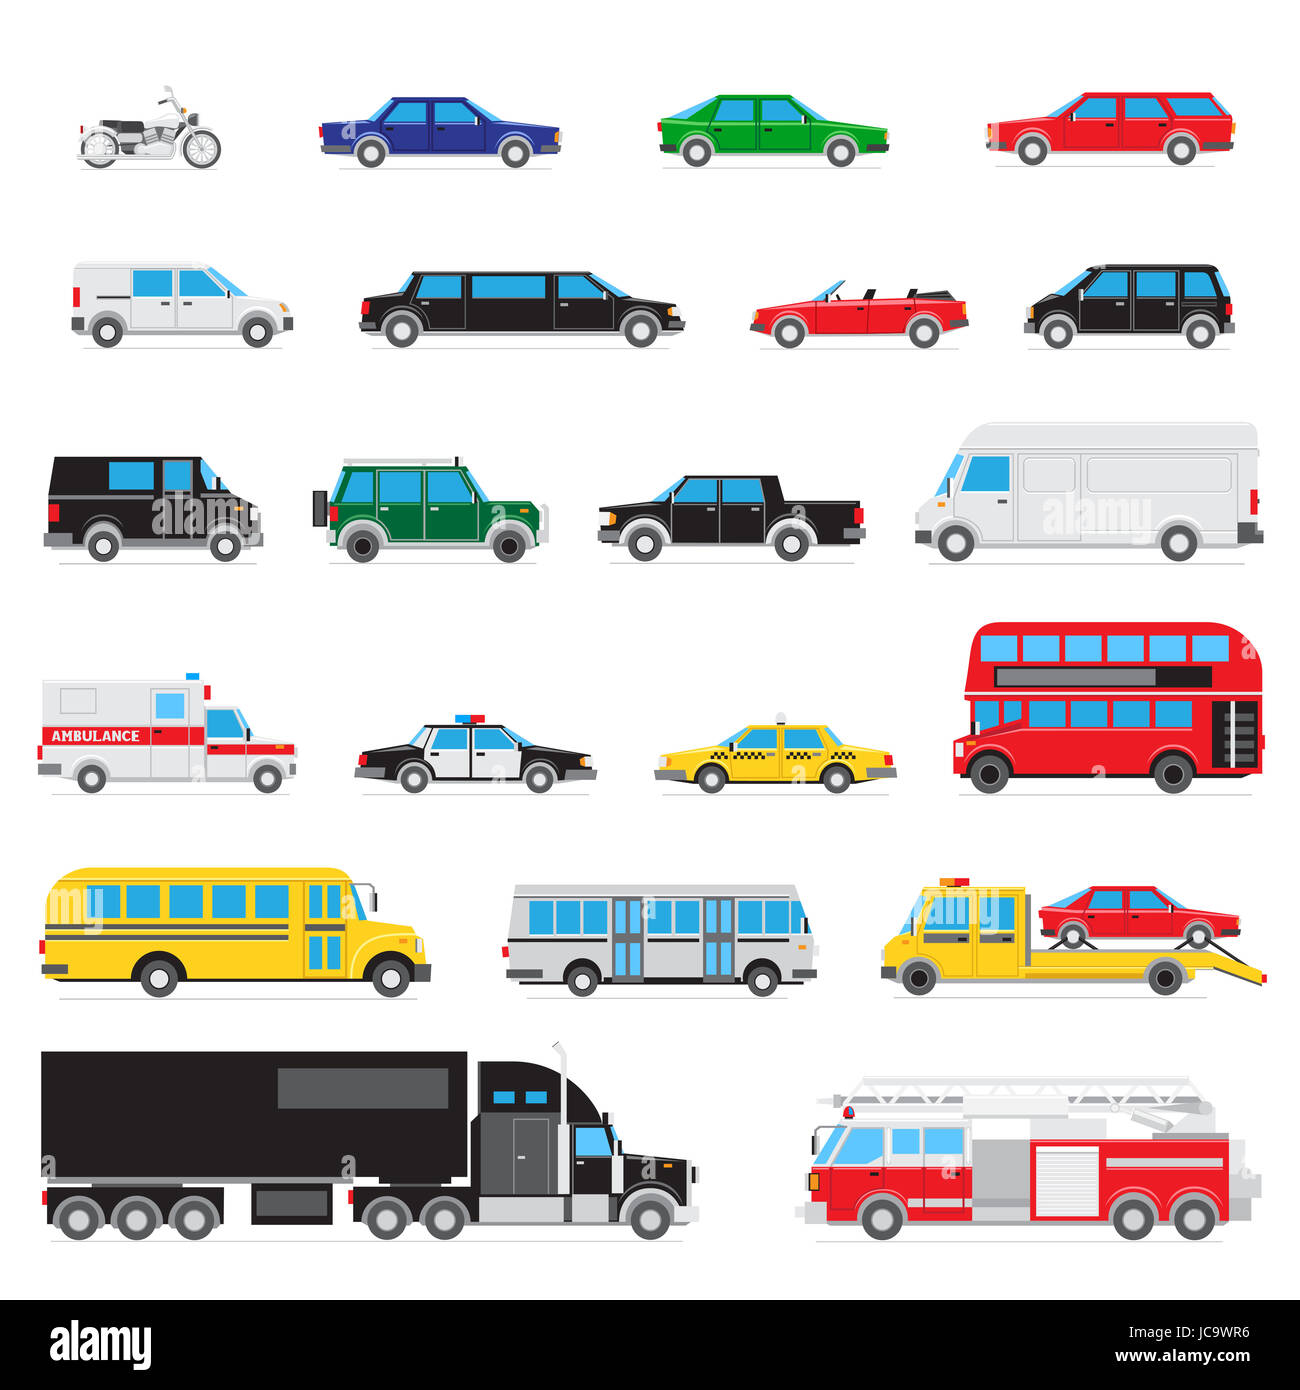 Different Types Of Cars >> The Collection Of Simple And Different Kinds And Types Of Cars Stock